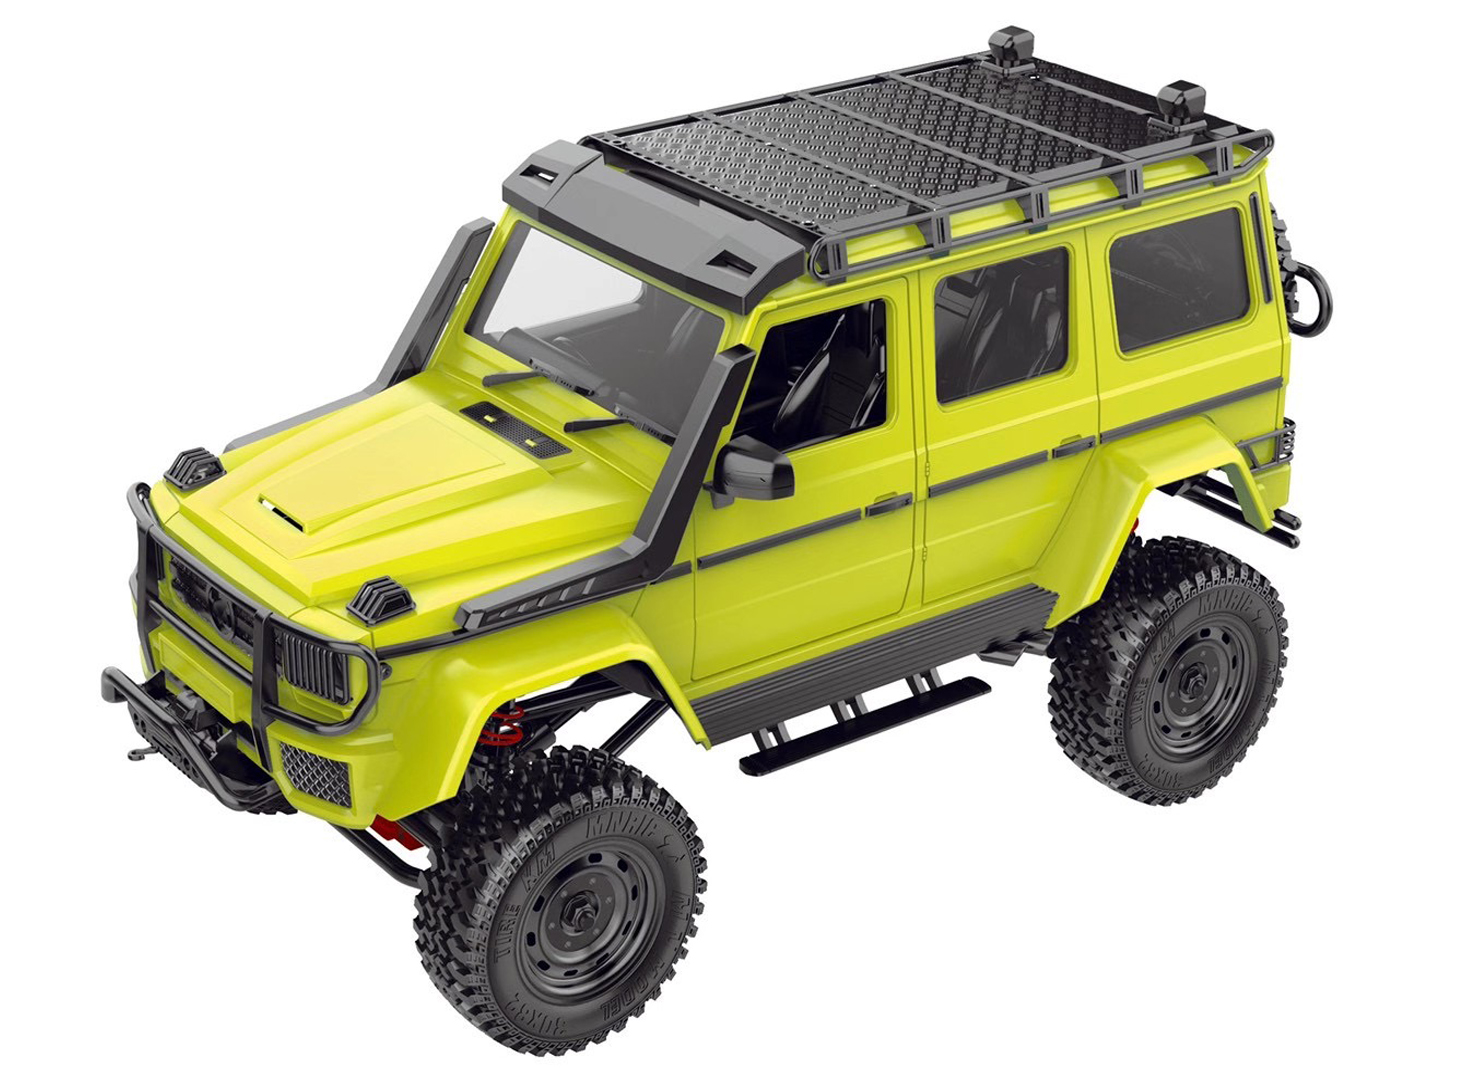 RC Car for Mn86ks 1:12 2.4G Four-wheel Drive  Climbing  Off-road  Vehicle Big  G Brabus Kit Toy Assembly  Version fluorescent green